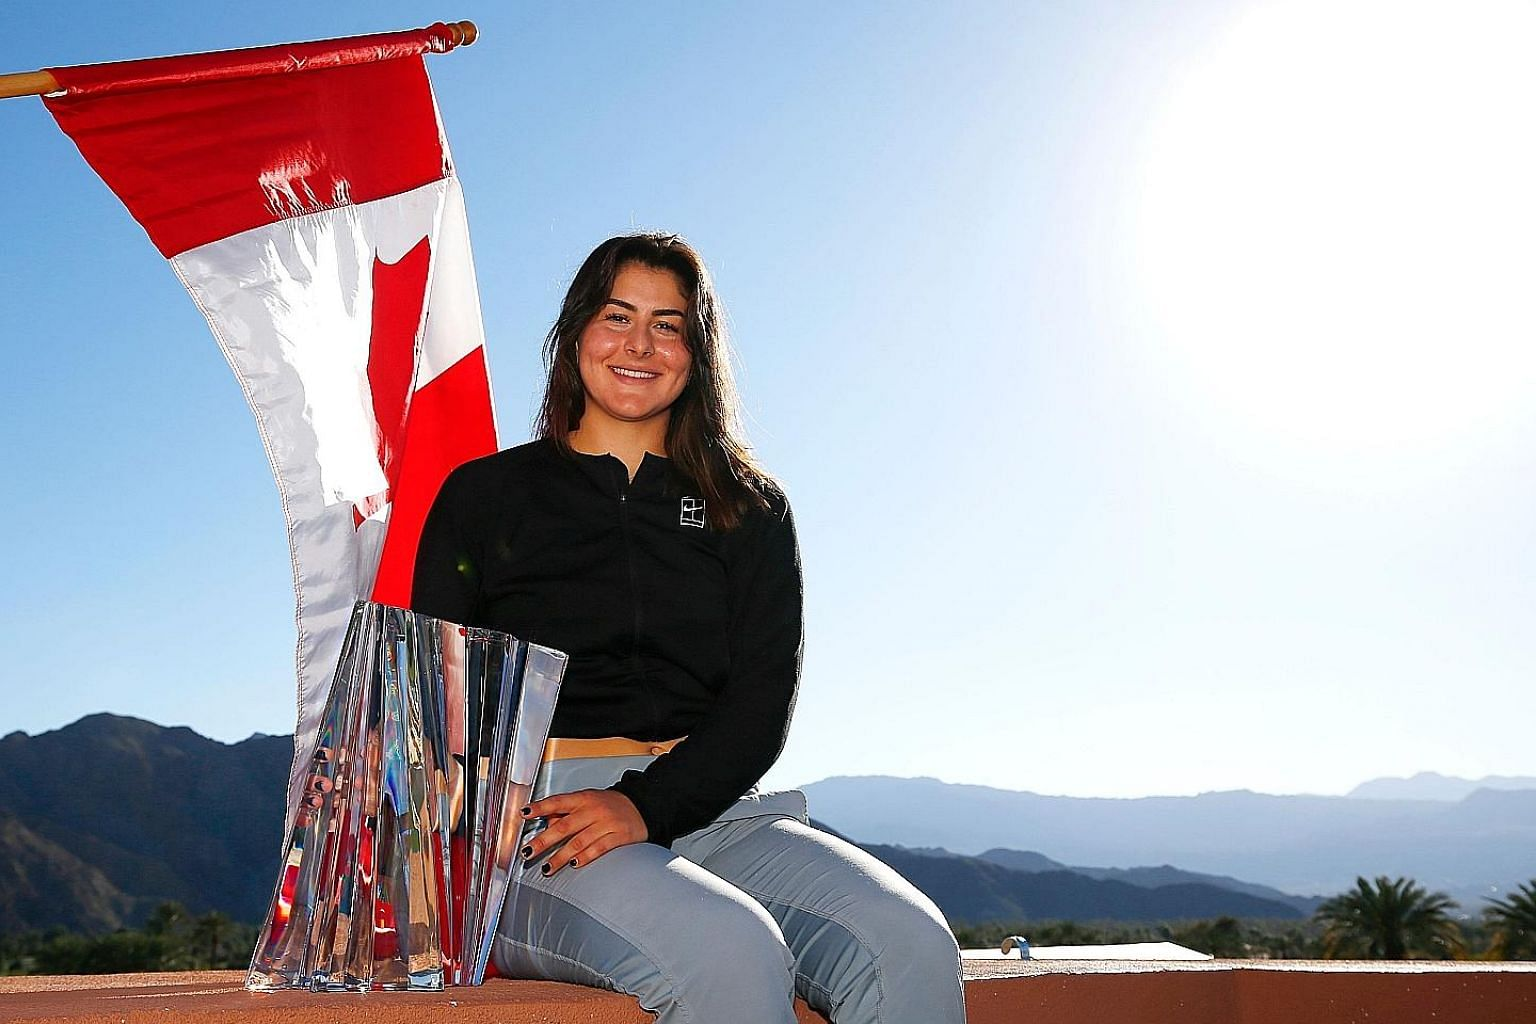 Canadian Bianca Andreescu, 18, is the first wild card to win the prestigious WTA Indian Wells trophy.